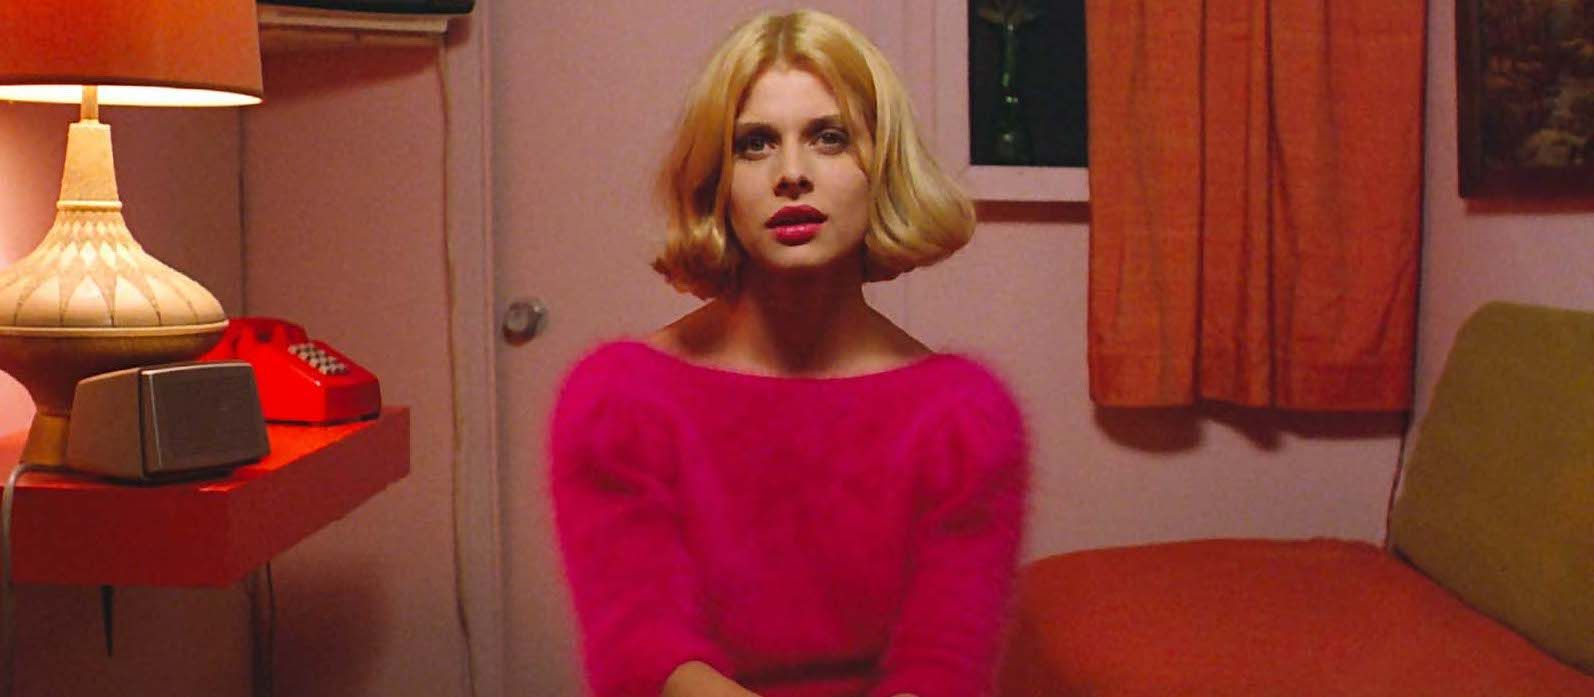 3 raisons de revoir Paris, Texas